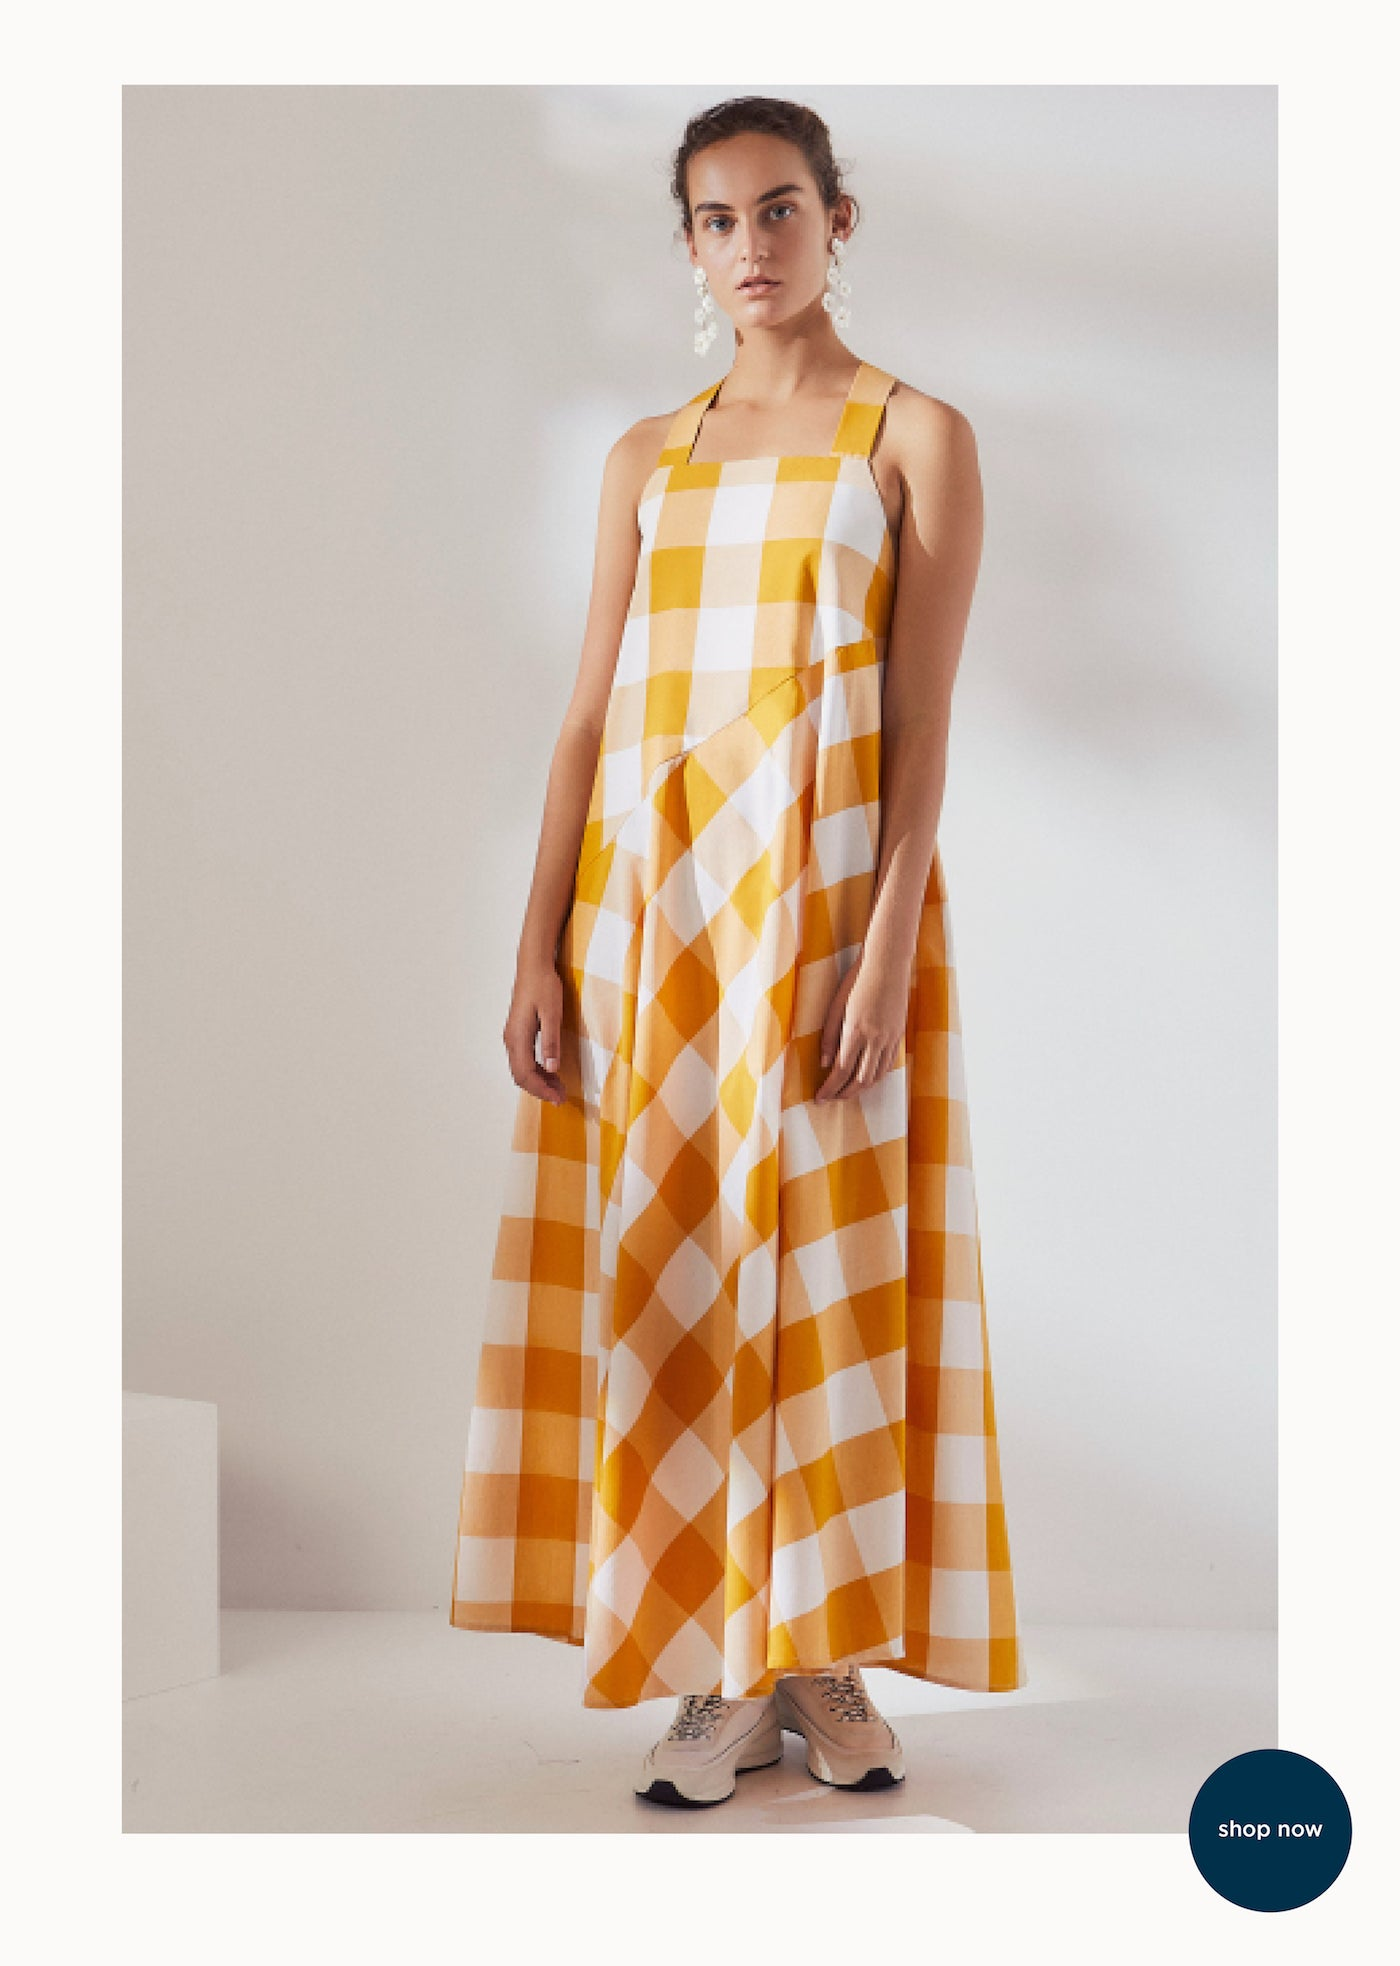 Kowtow - Ethical Fashion - Riley Check Dress - Mt Maunganui Stockist